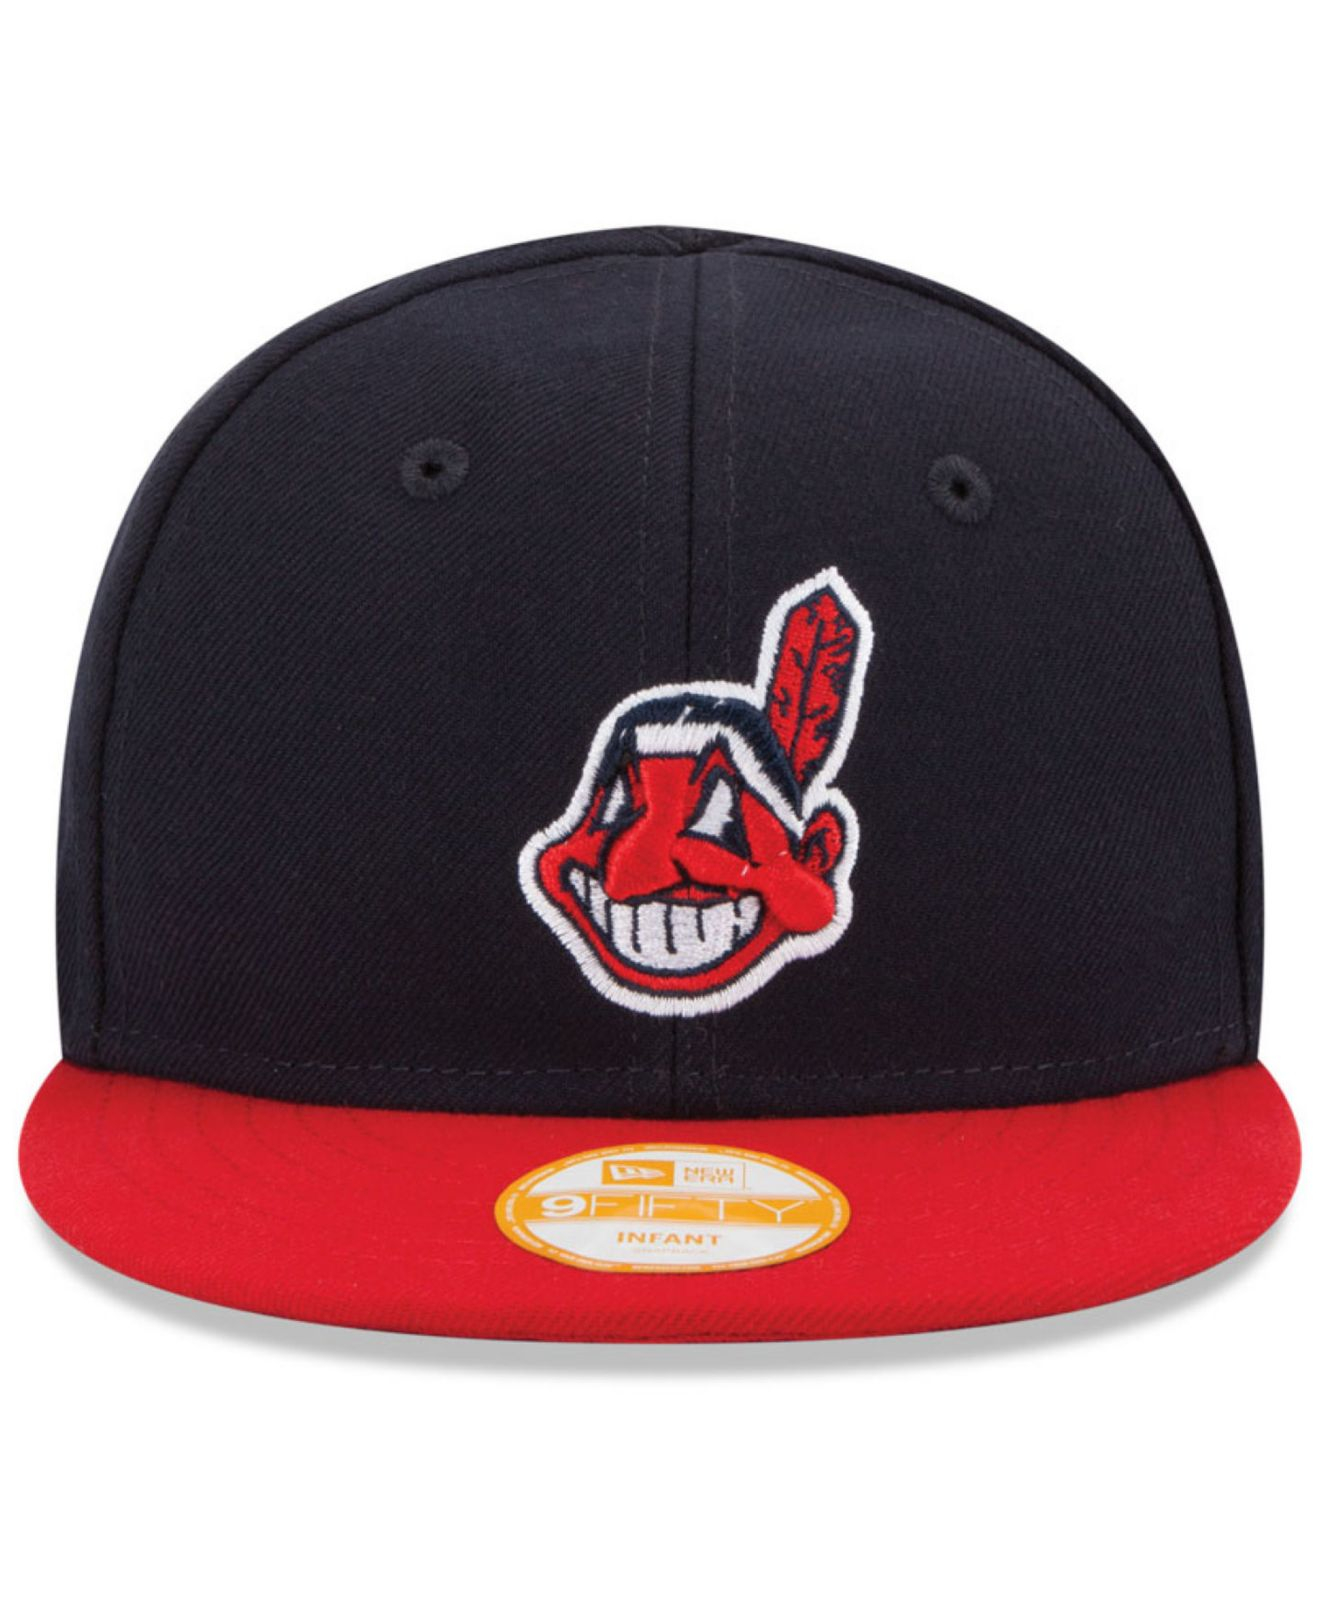 e0d8a868cd2 ... real lyst ktz babies cleveland indians 9fifty snapback cap in red for  men cc2ee f1e37